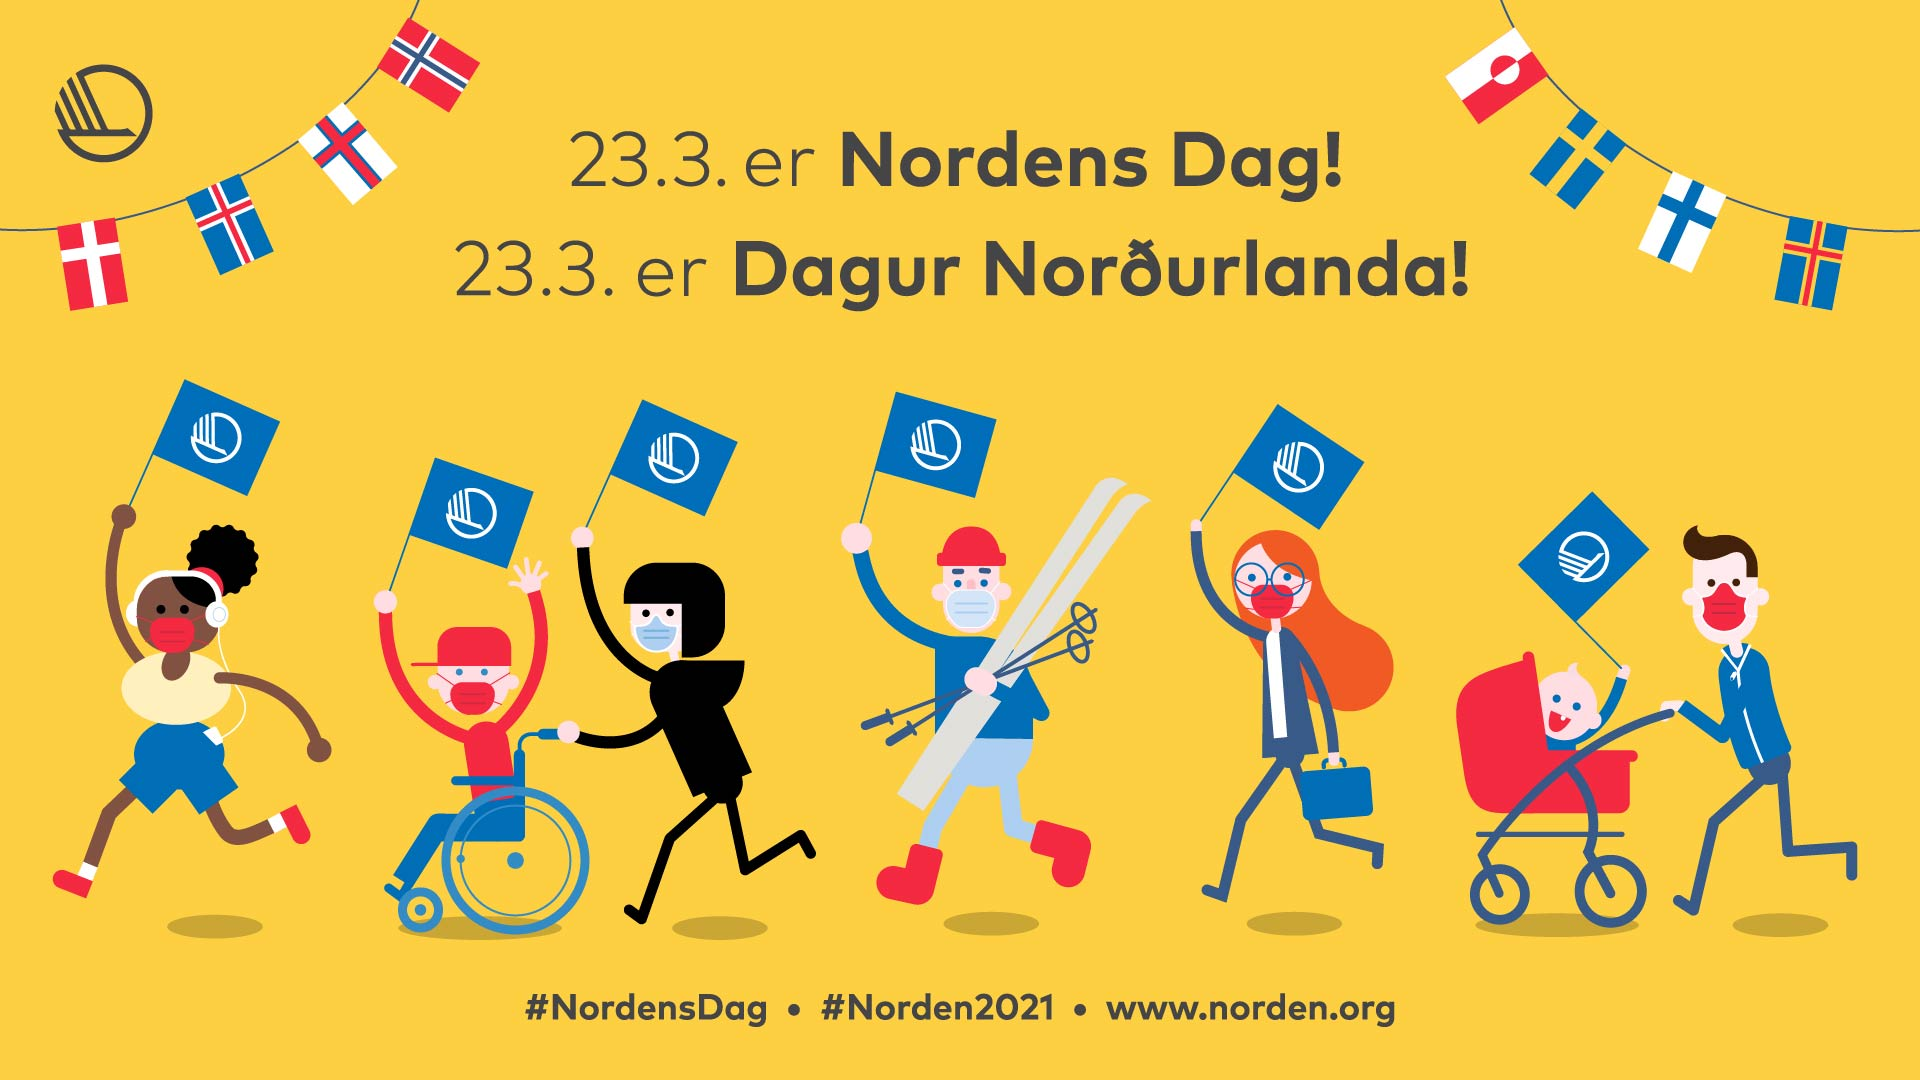 Nordic Day 23 March – various events throughout the week related to Nordic culture